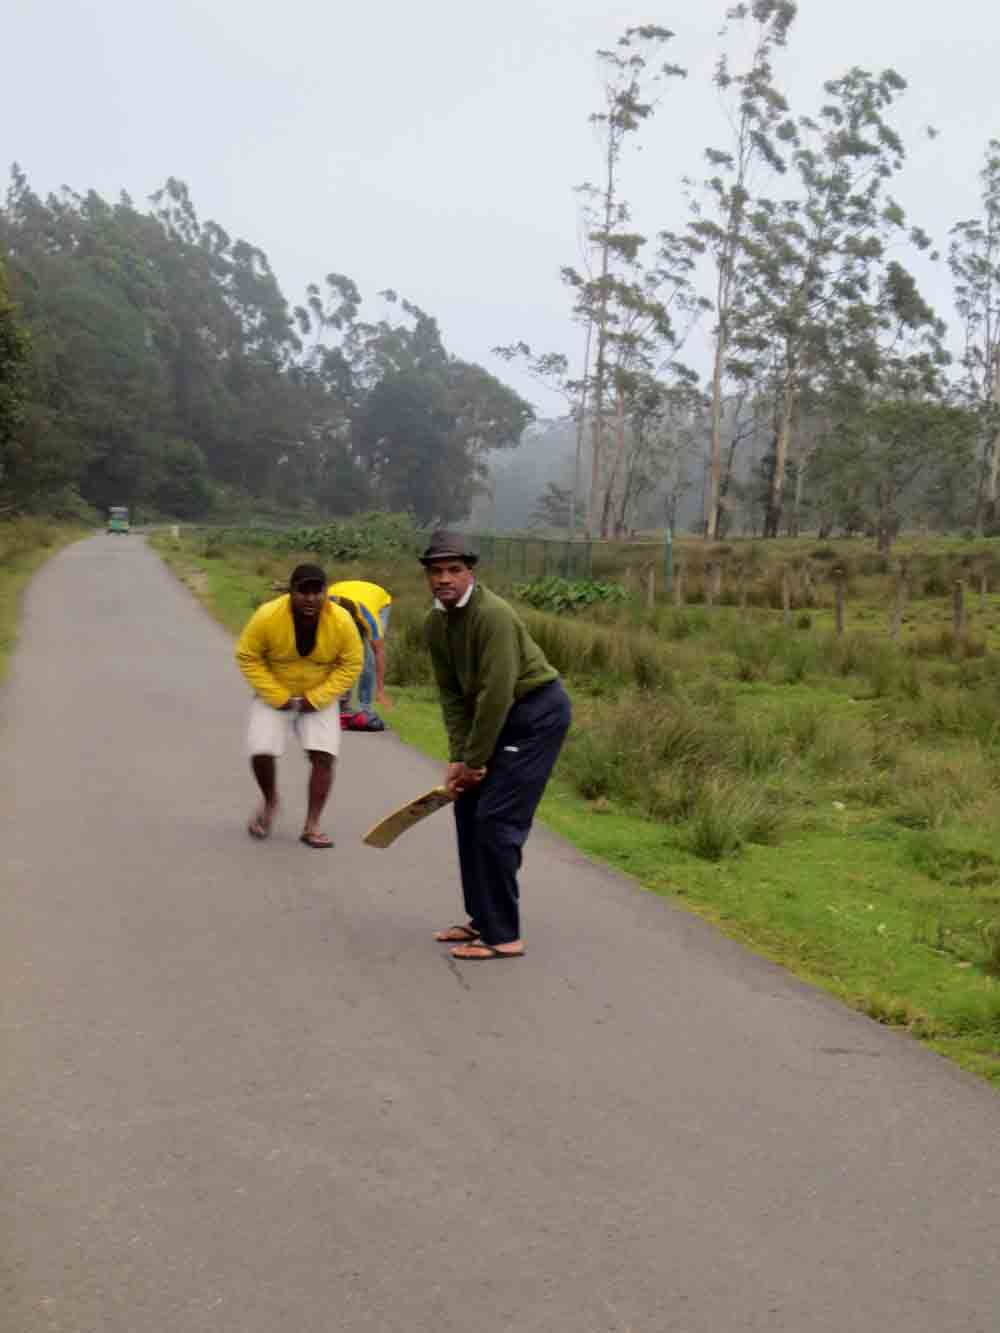 Cricket_Pattipola_Nuwara_Eliya